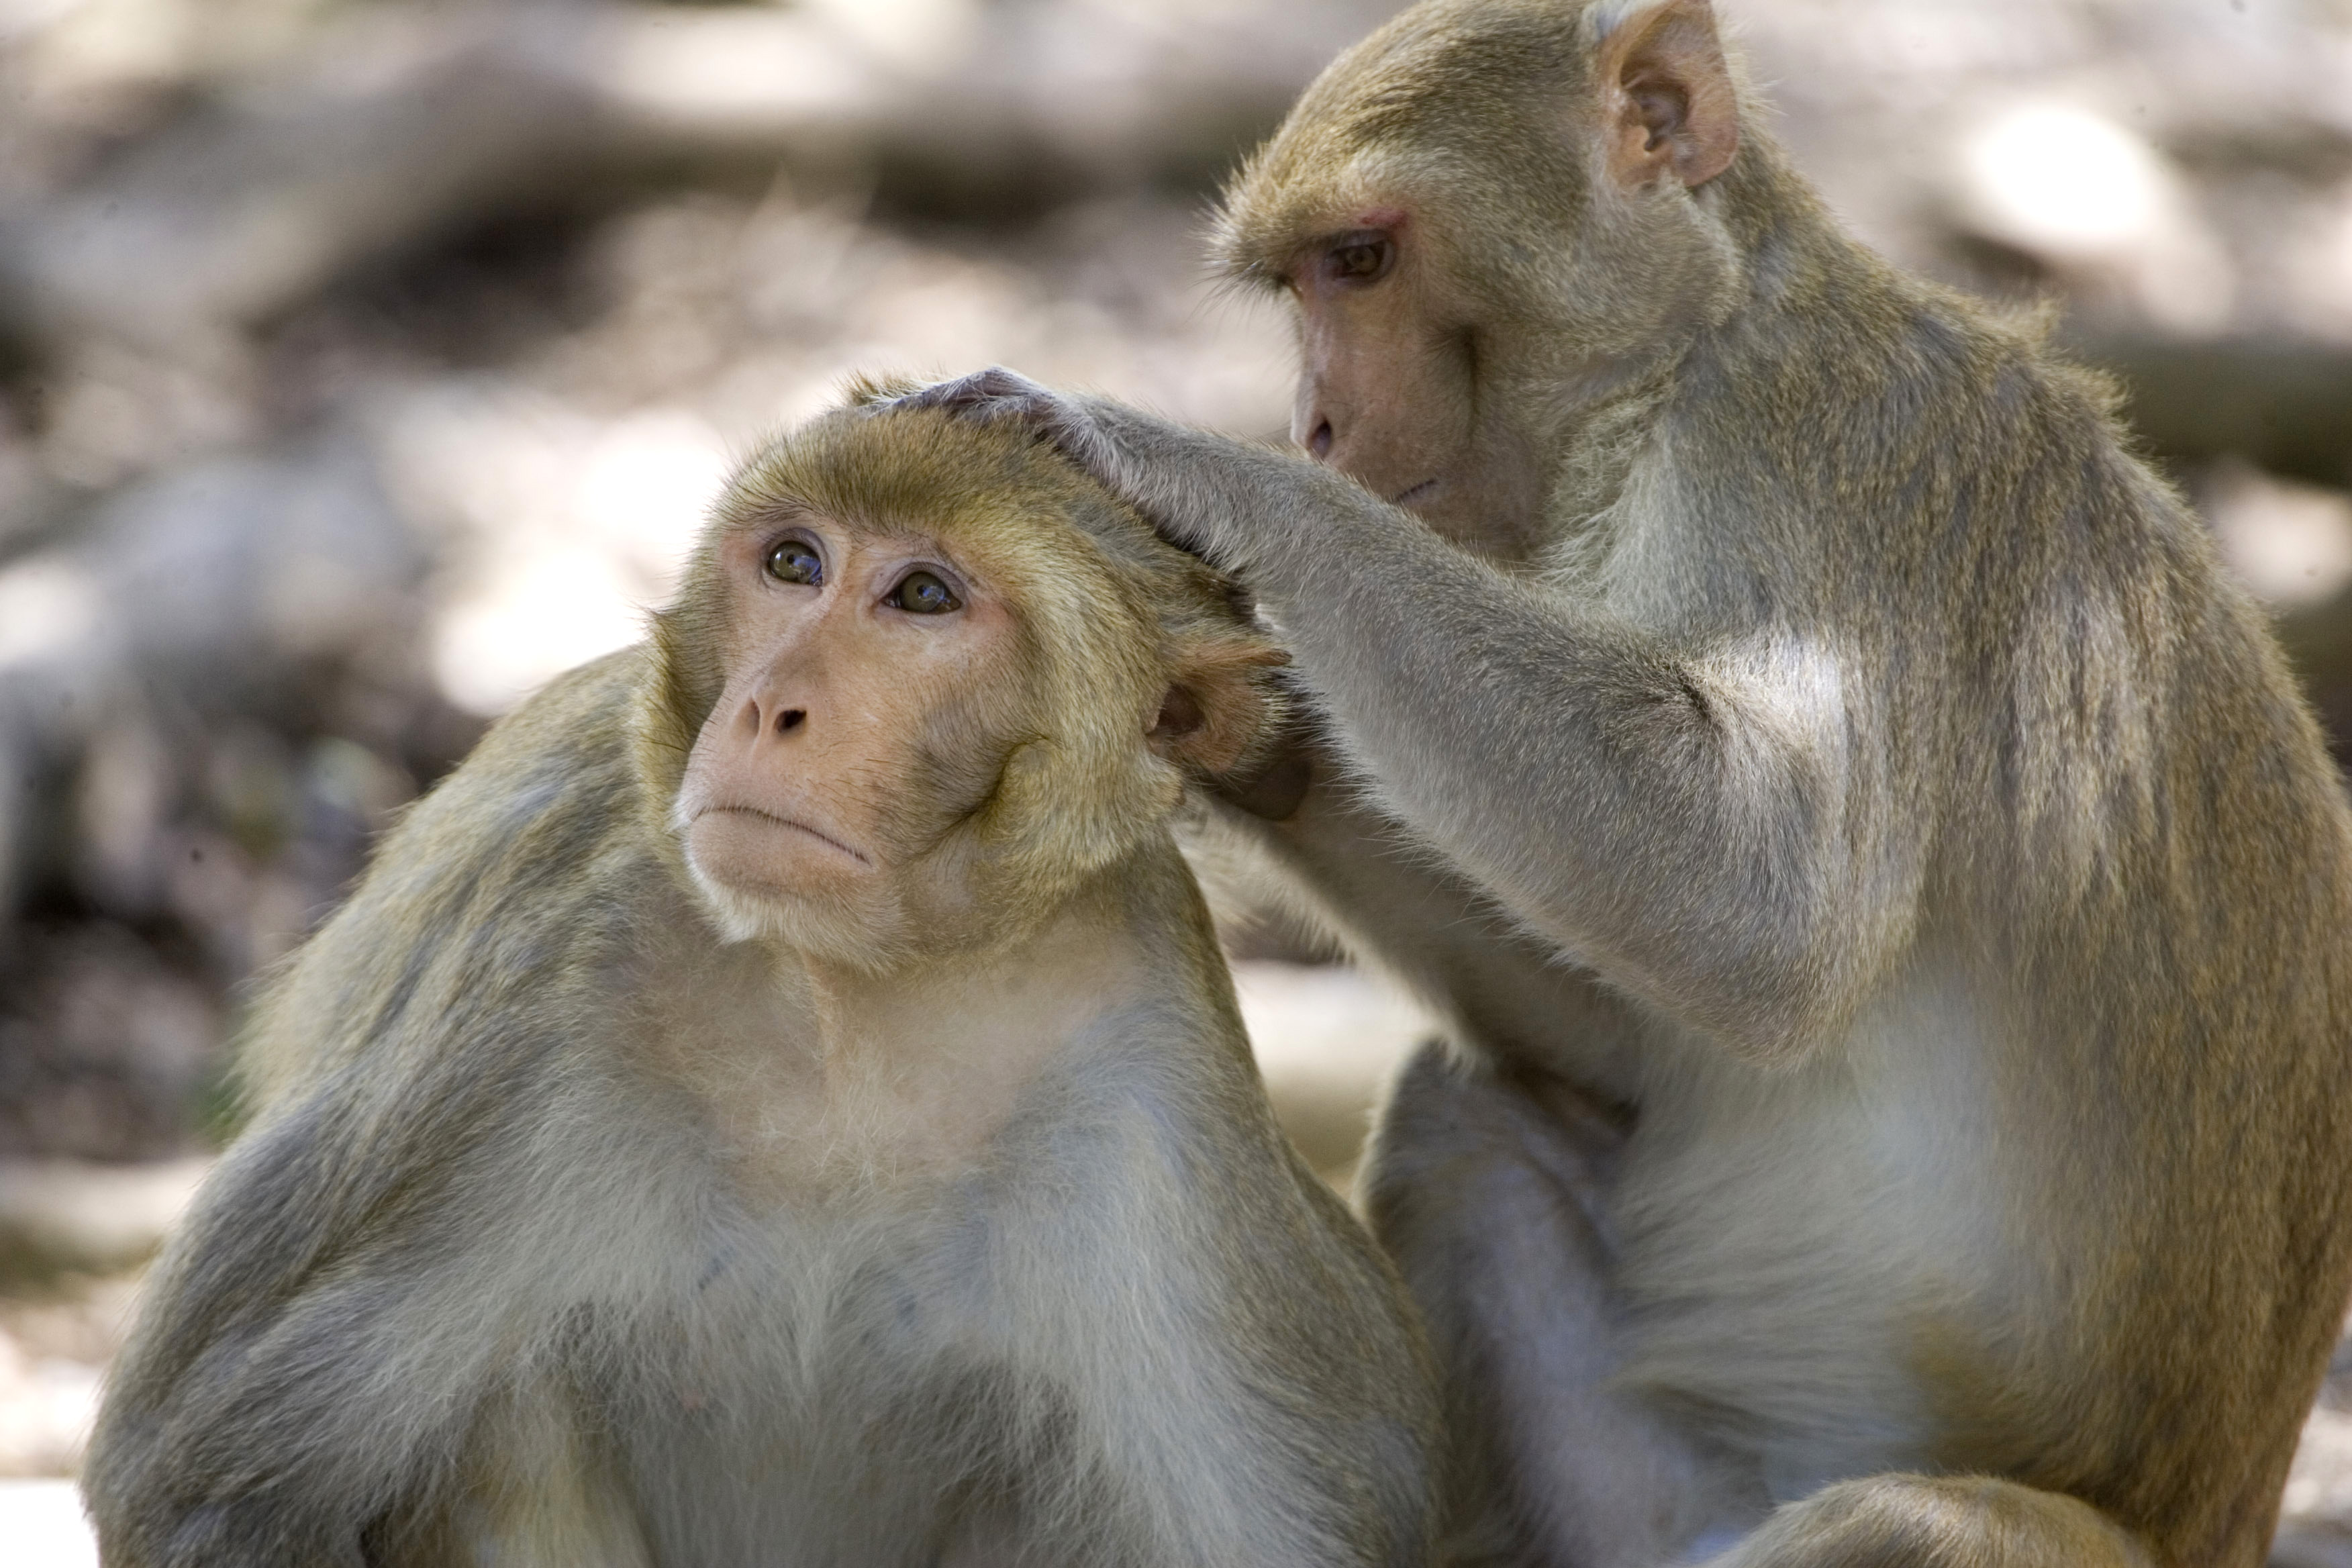 A rhesus macaque monkey grooms another on Cayo Santiago, known as Monkey Island off the eastern coast of Puerto Rico, on July 29, 2008